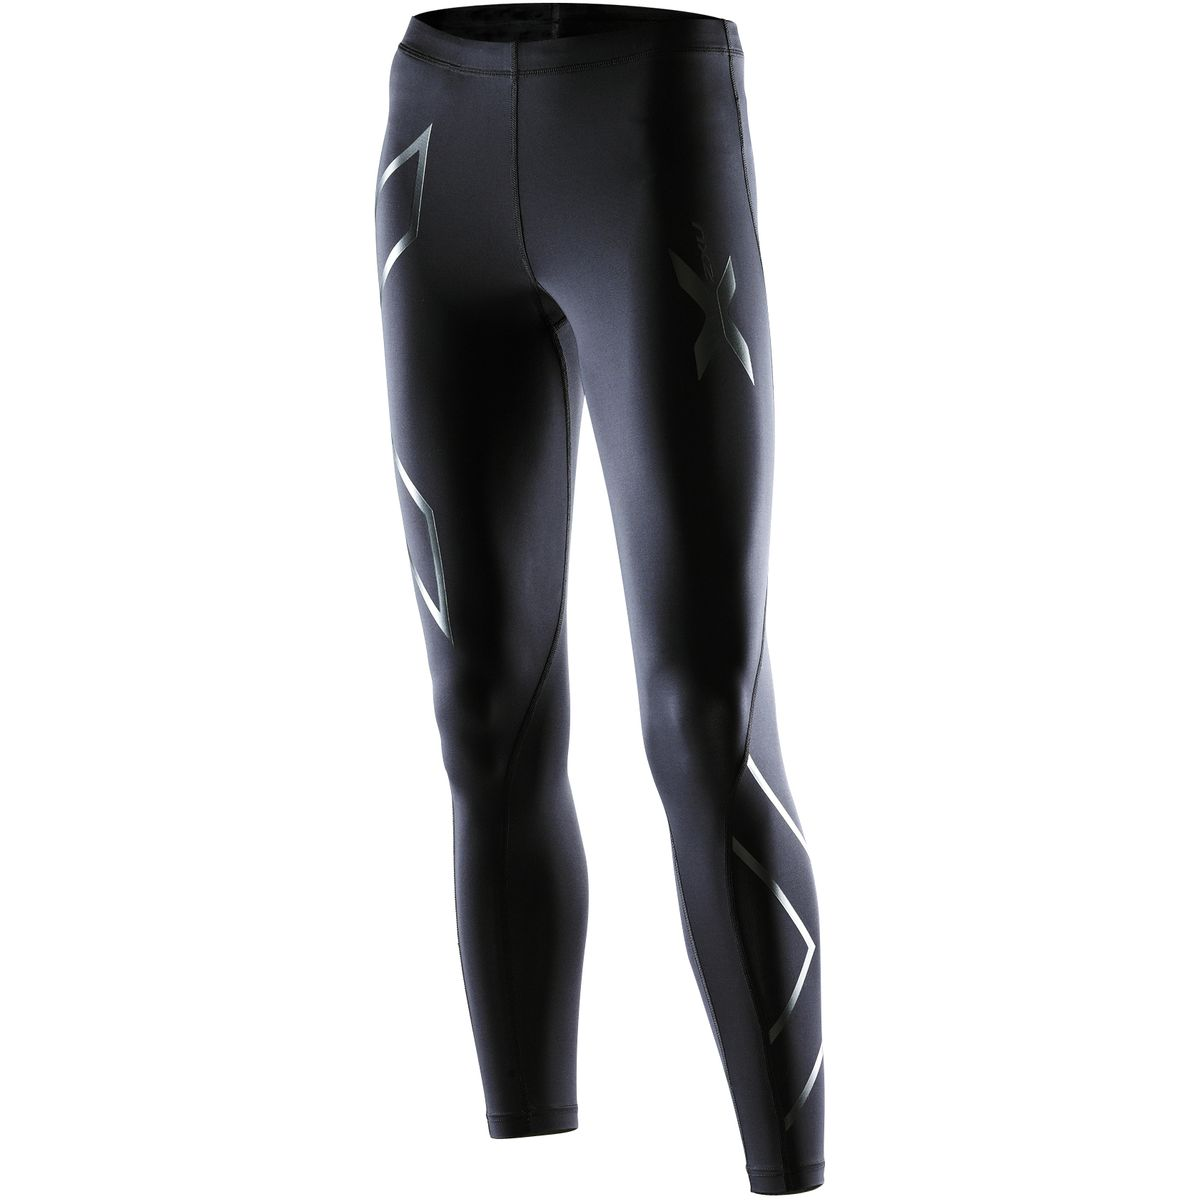 photo of a 2XU outdoor clothing product